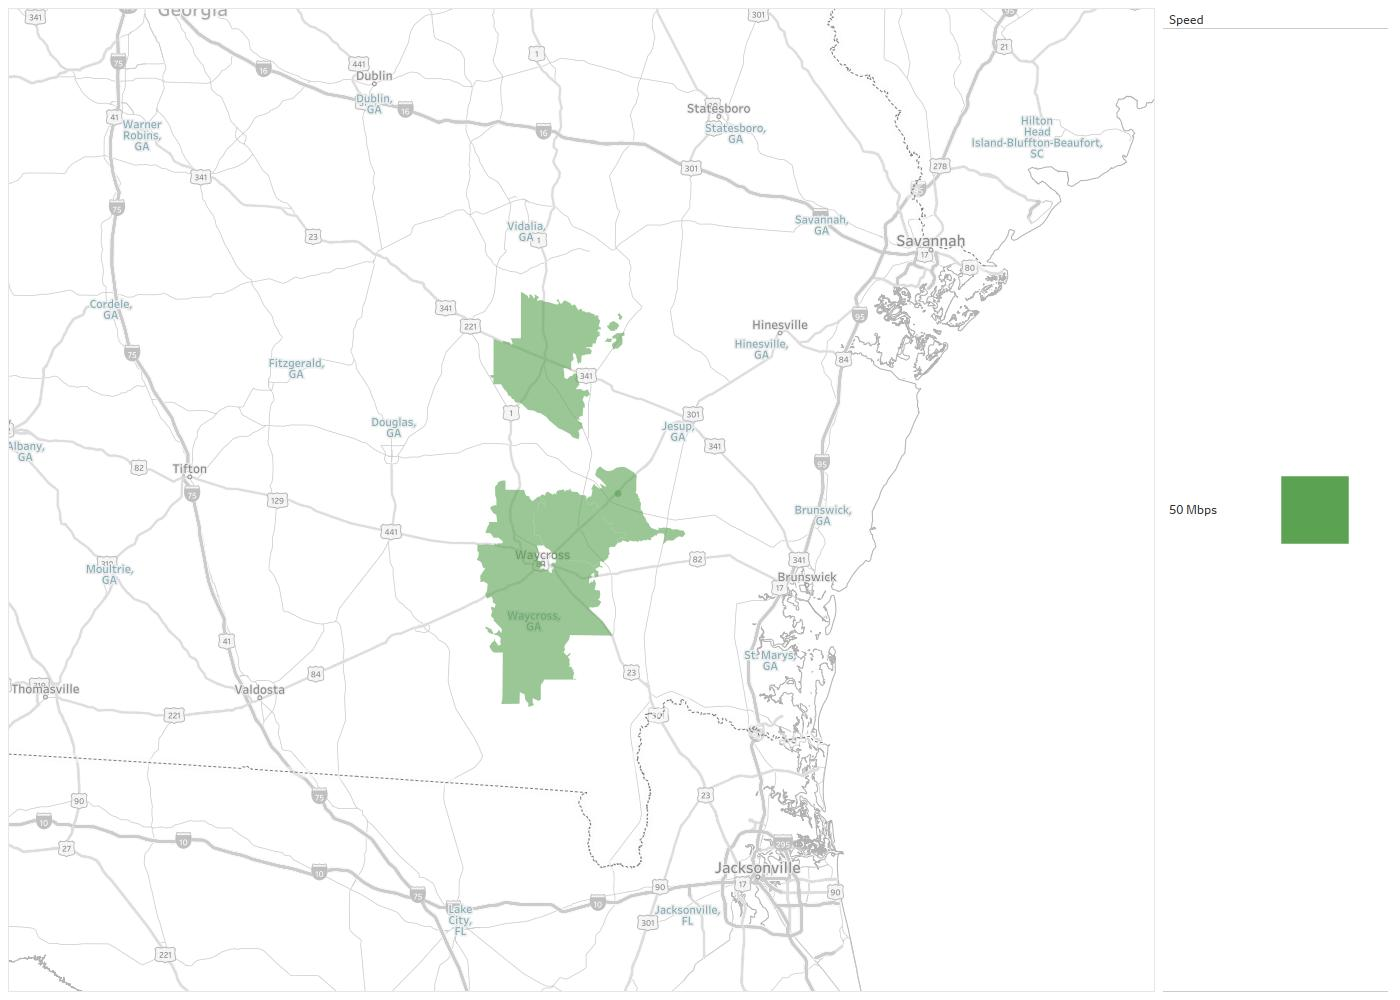 Atc Broadband Availability Areas Coverage Map Decision Data